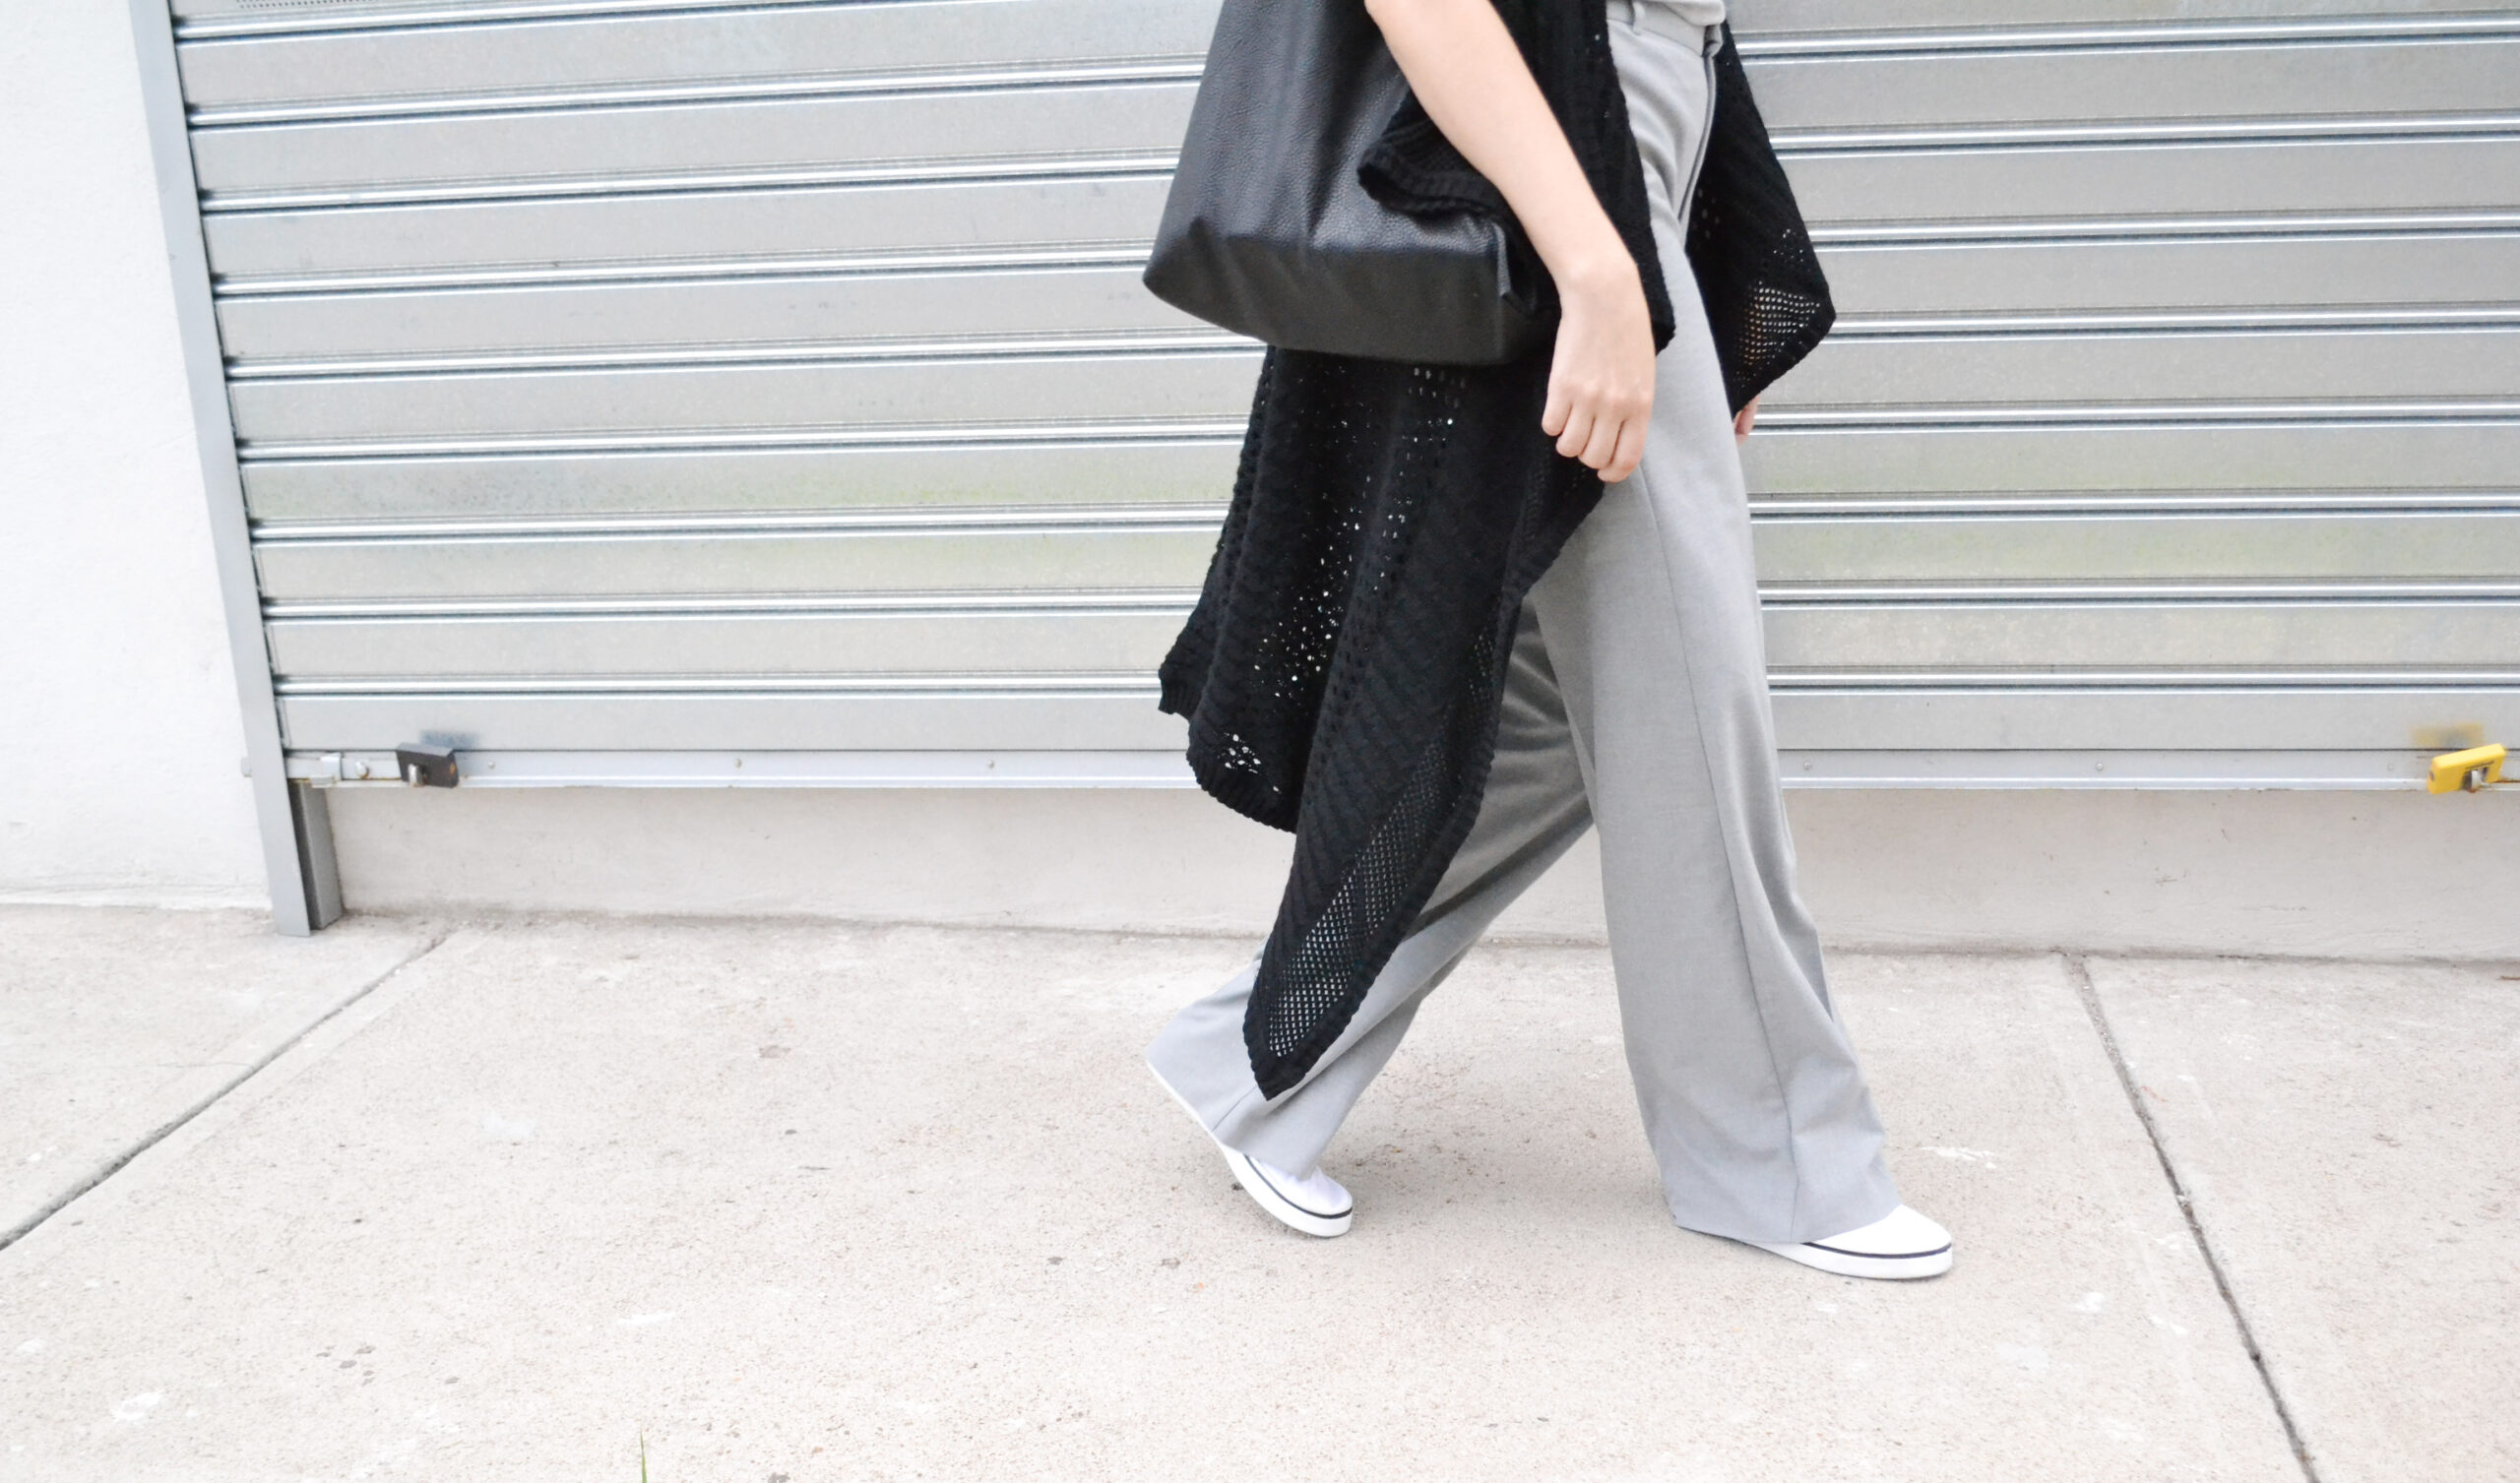 daniela soriano, outfit, ideas, fall, transitioning, wide leg pants, gray, light gray, knit, vest, leather tote bag, white sneakers, canvas sneakers, outfit, ideas,